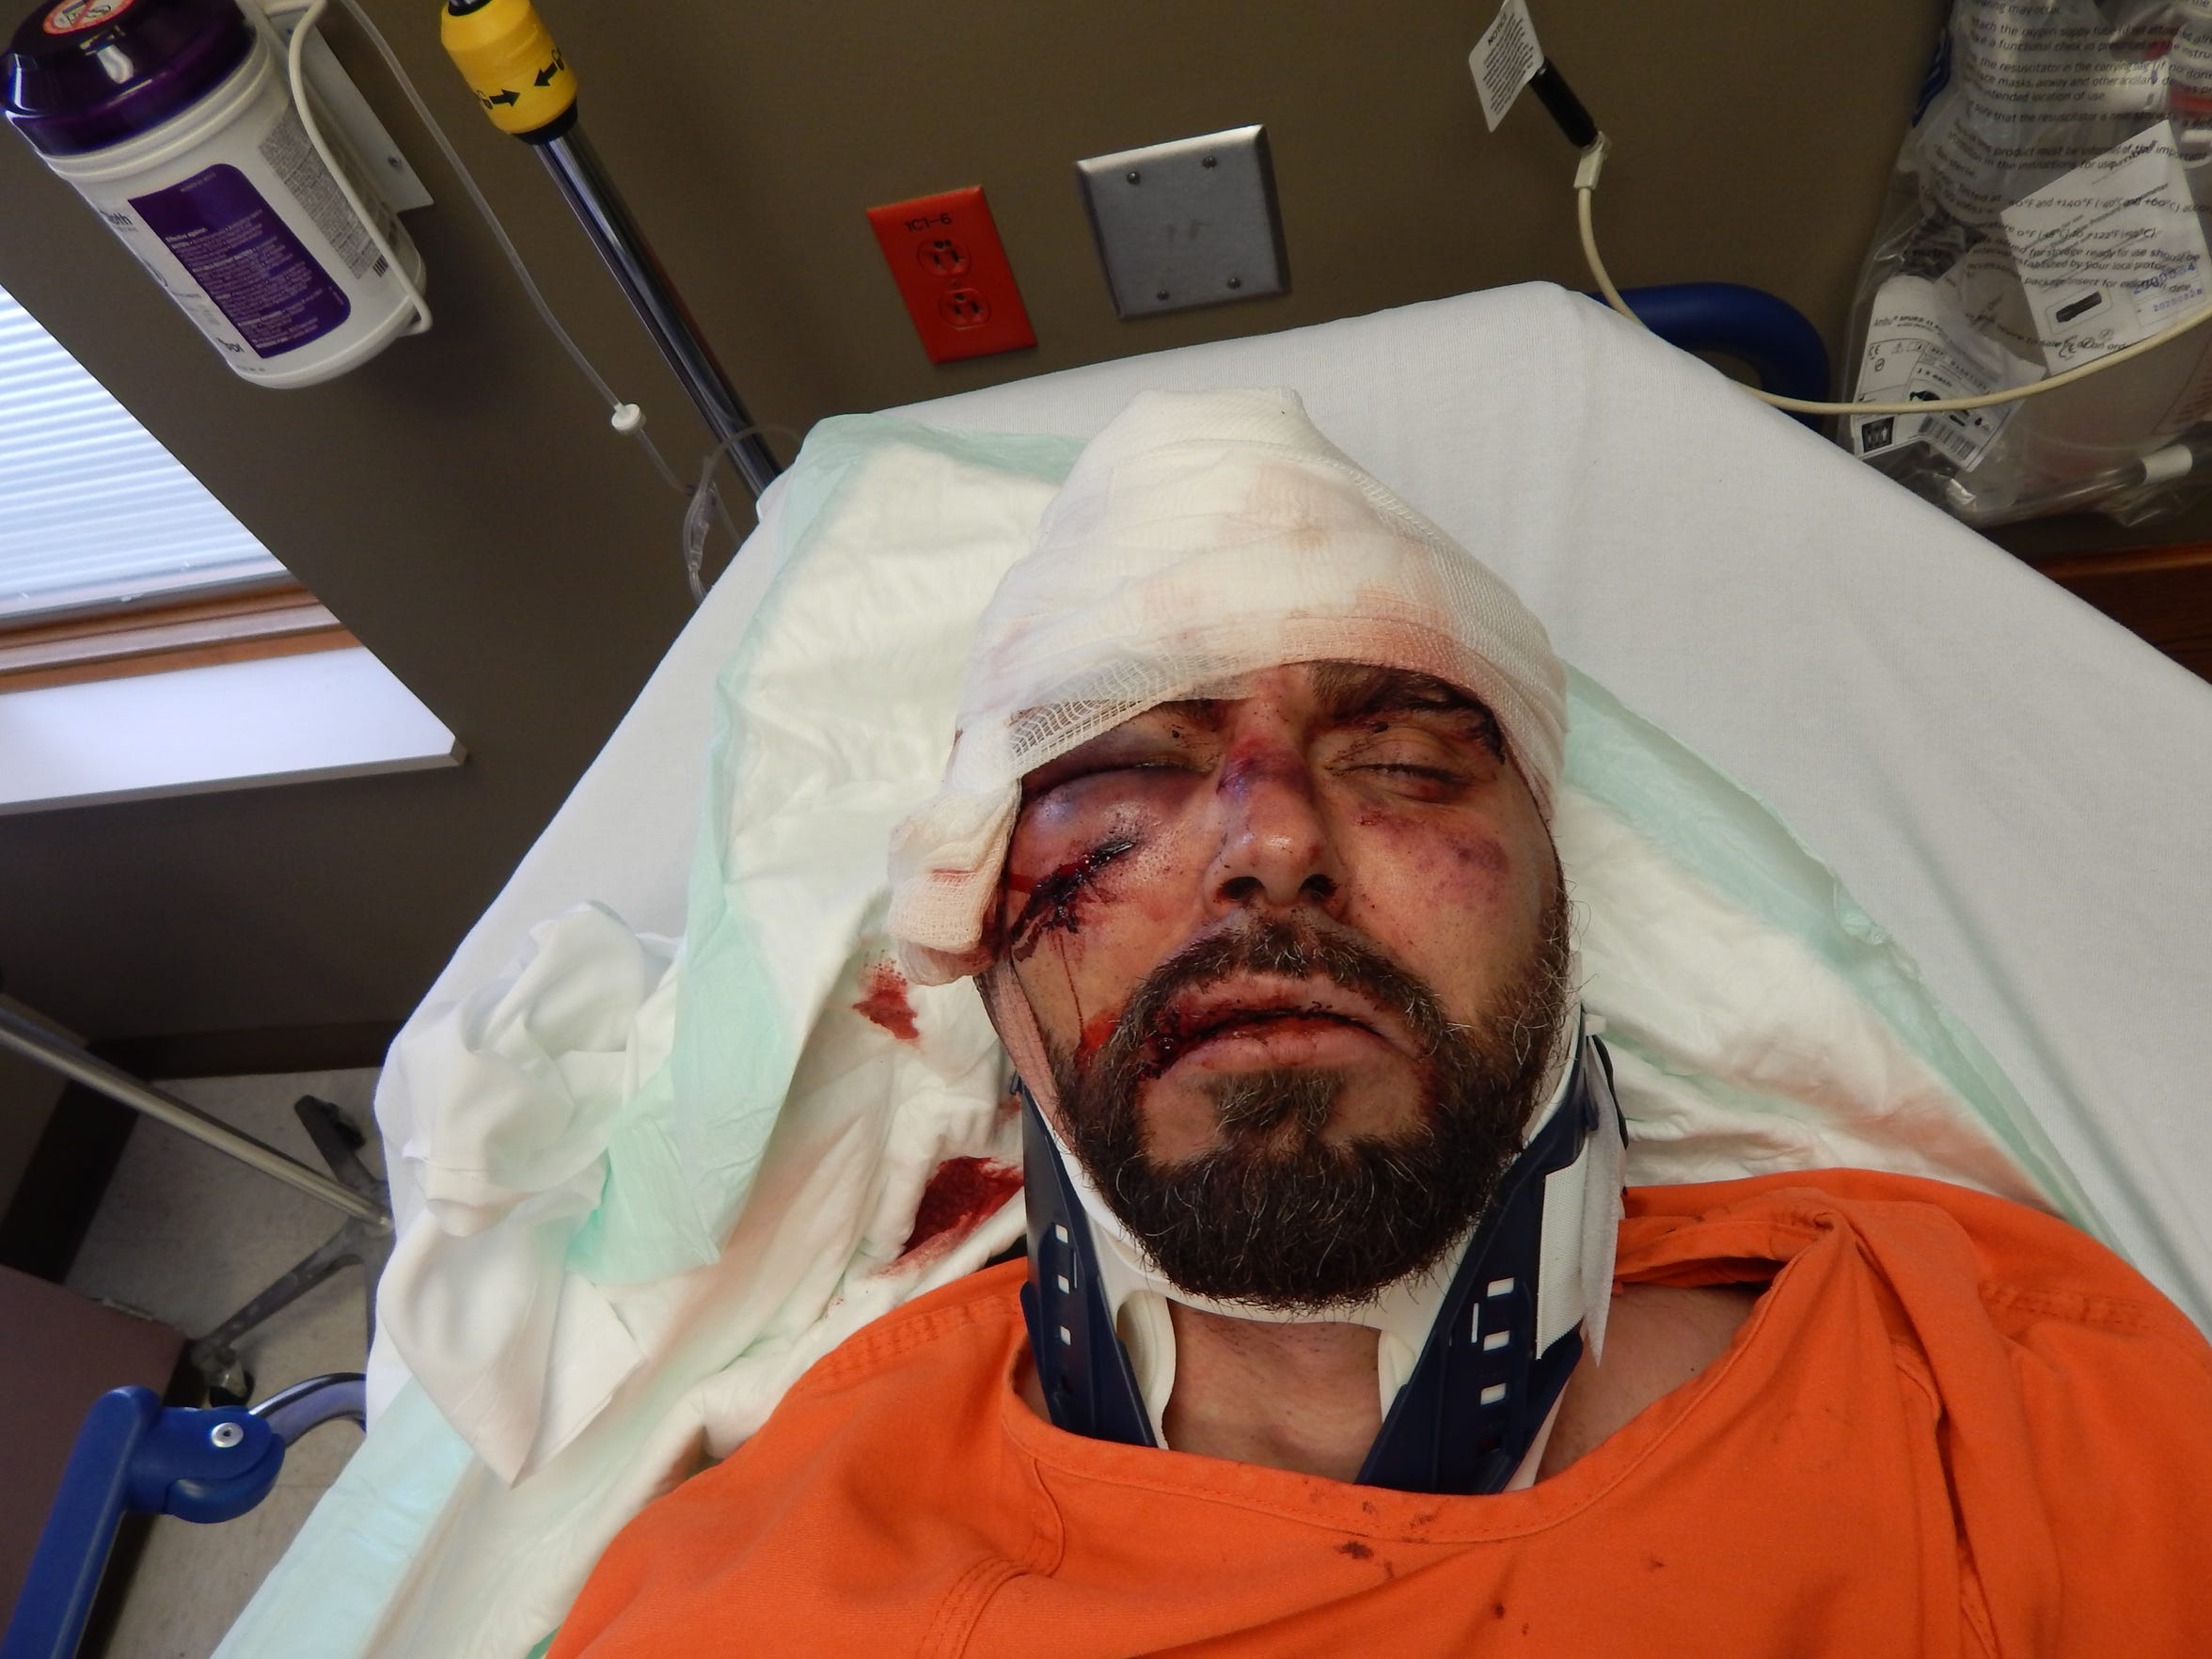 Greg Reinke was treated at Adena Pike Medical Center after he and fellow inmate Casey Pigge stabbed a correctional officer more than 30 times on Feb. 20, 2018, at Southern Ohio Correctional Facility.